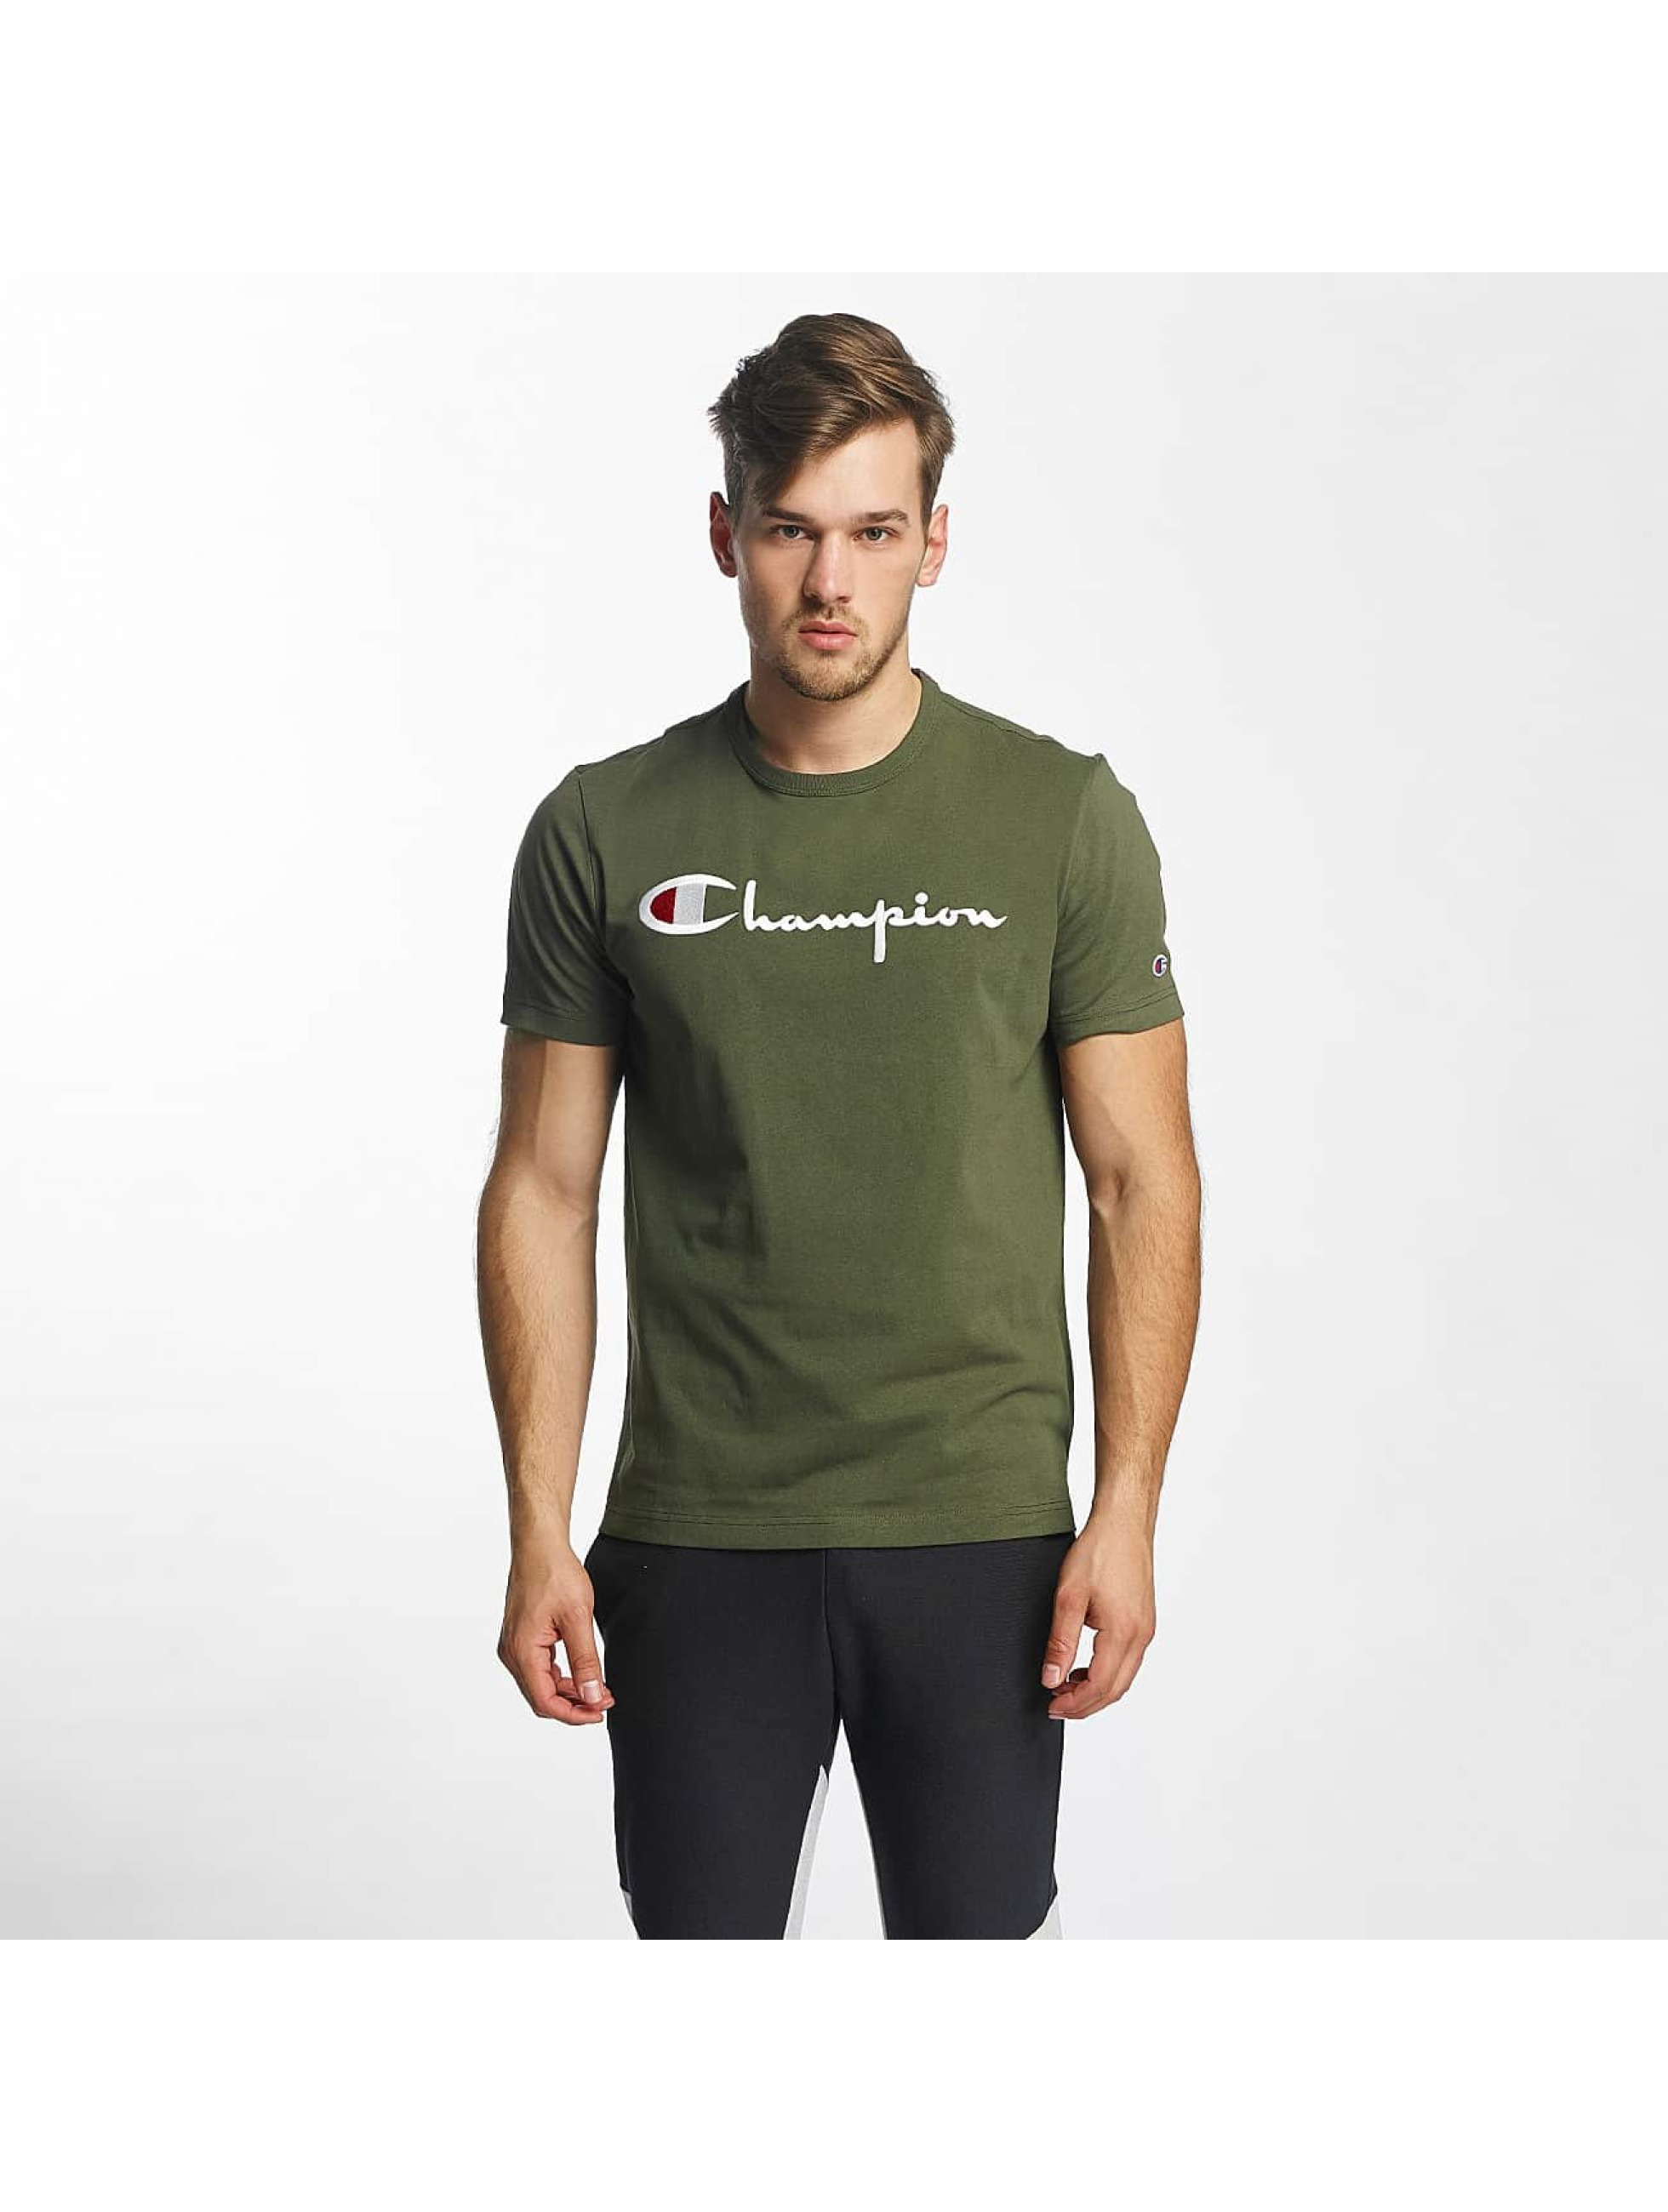 champion cotton graphic olive homme t shirt champion acheter pas cher haut 372729. Black Bedroom Furniture Sets. Home Design Ideas